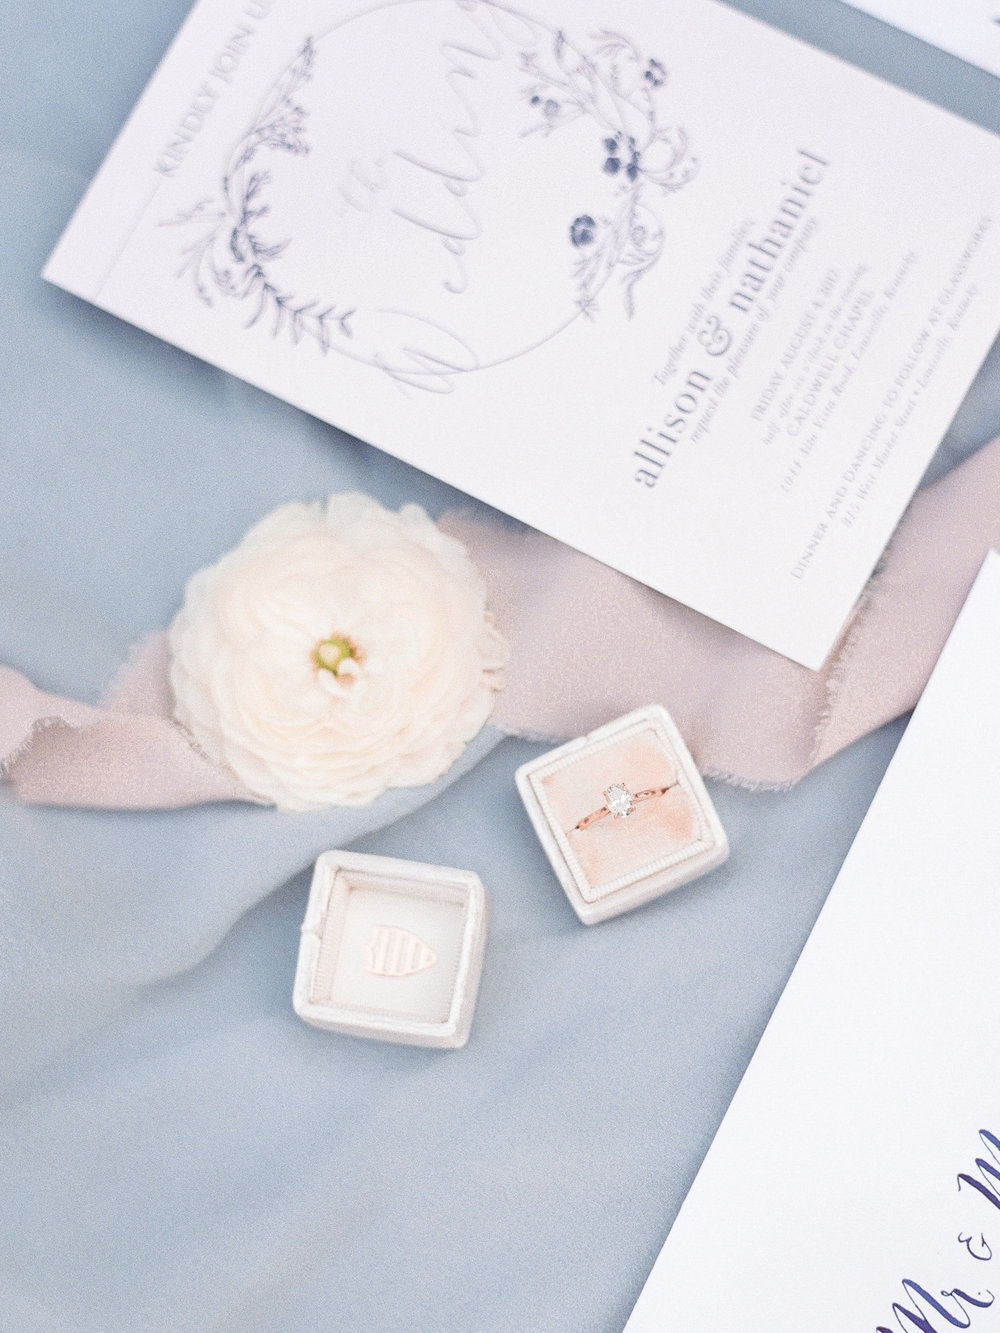 Stationery   Andrea Haughey Design  Photography   Ava Maria Photography  Ring Box   The Mrs. Box  Florals   Flowers & Thyme  Textiles   Tono & co.  Planning & Styling   To Be Loved Events